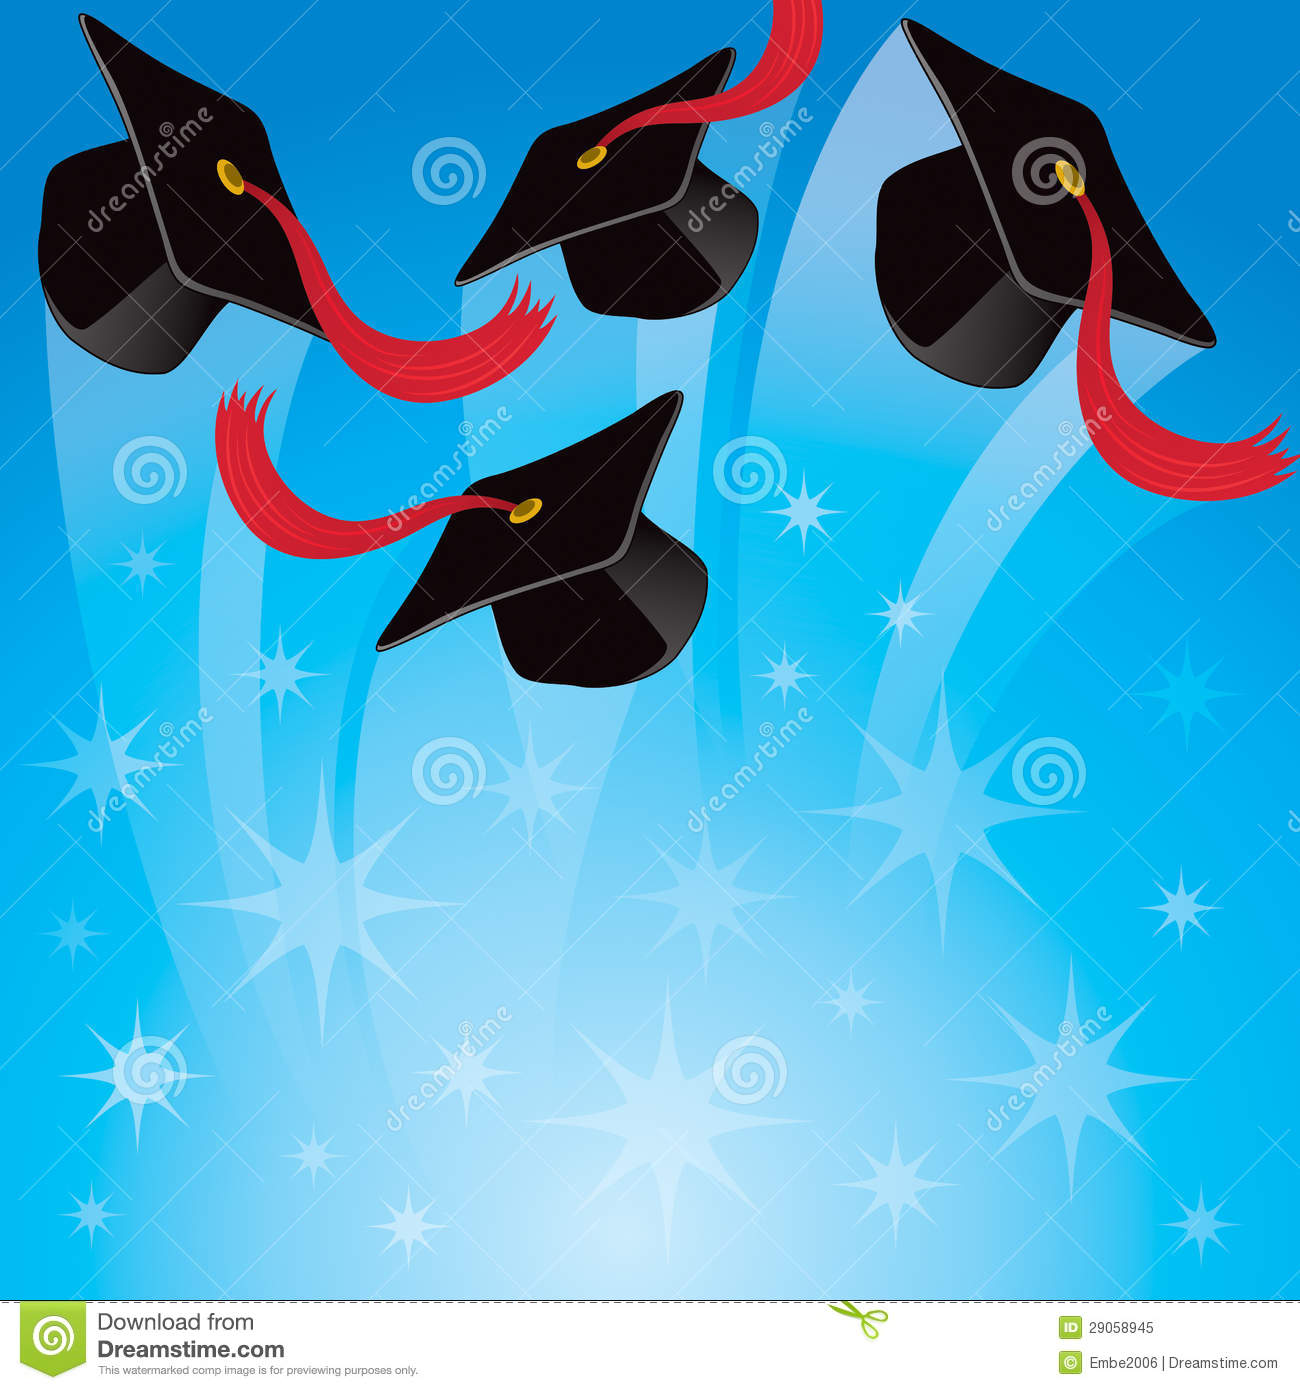 Graduation Hat Background Royalty Free Stock Photo - Image: 29058945